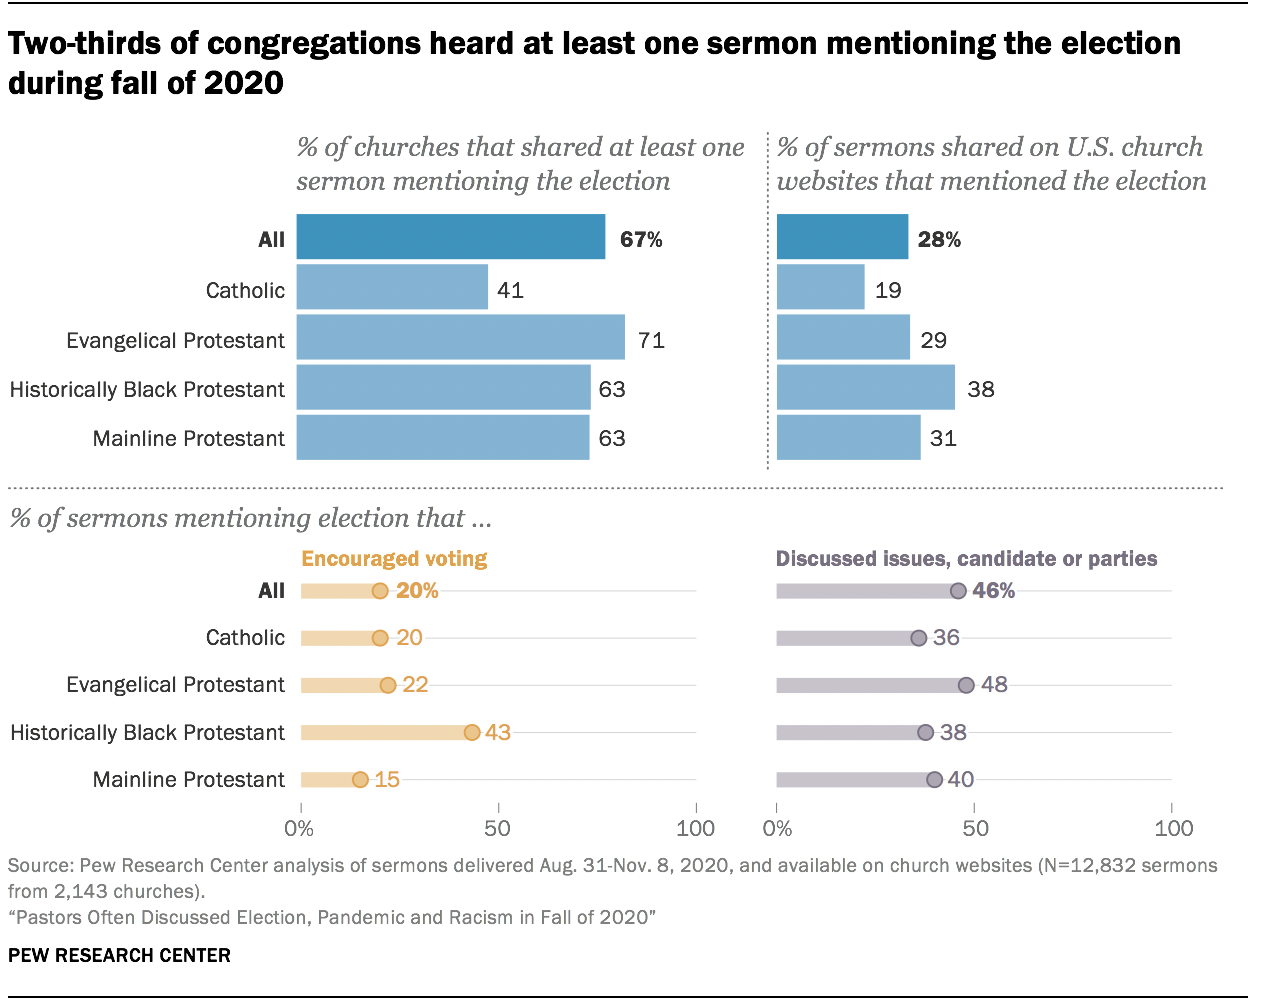 Two-thirds of congregations heard at least one sermon mentioning the election during fall of 2020